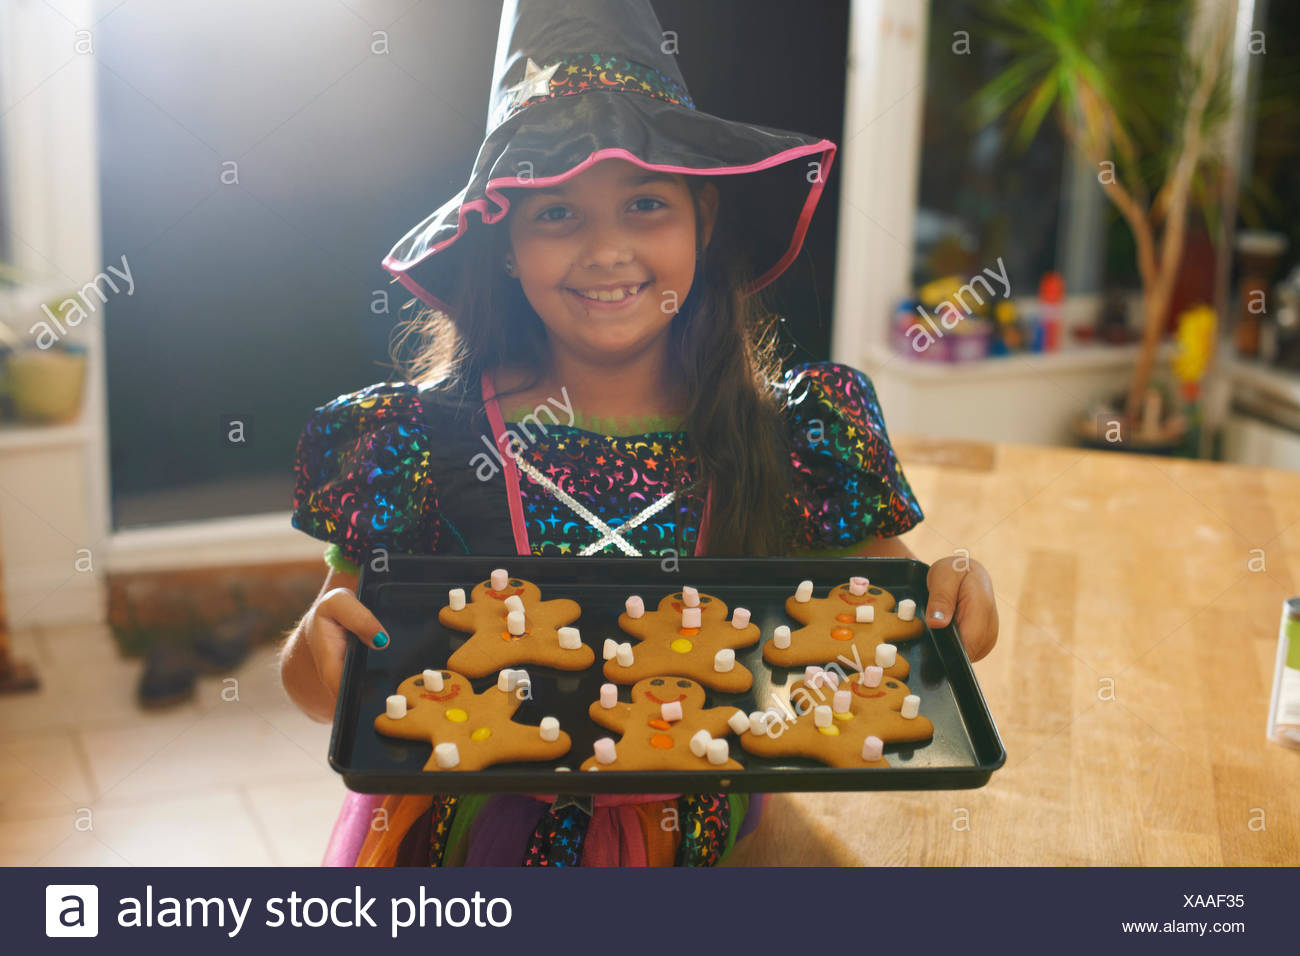 girl wearing halloween witch costume holding tray of gingerbread men